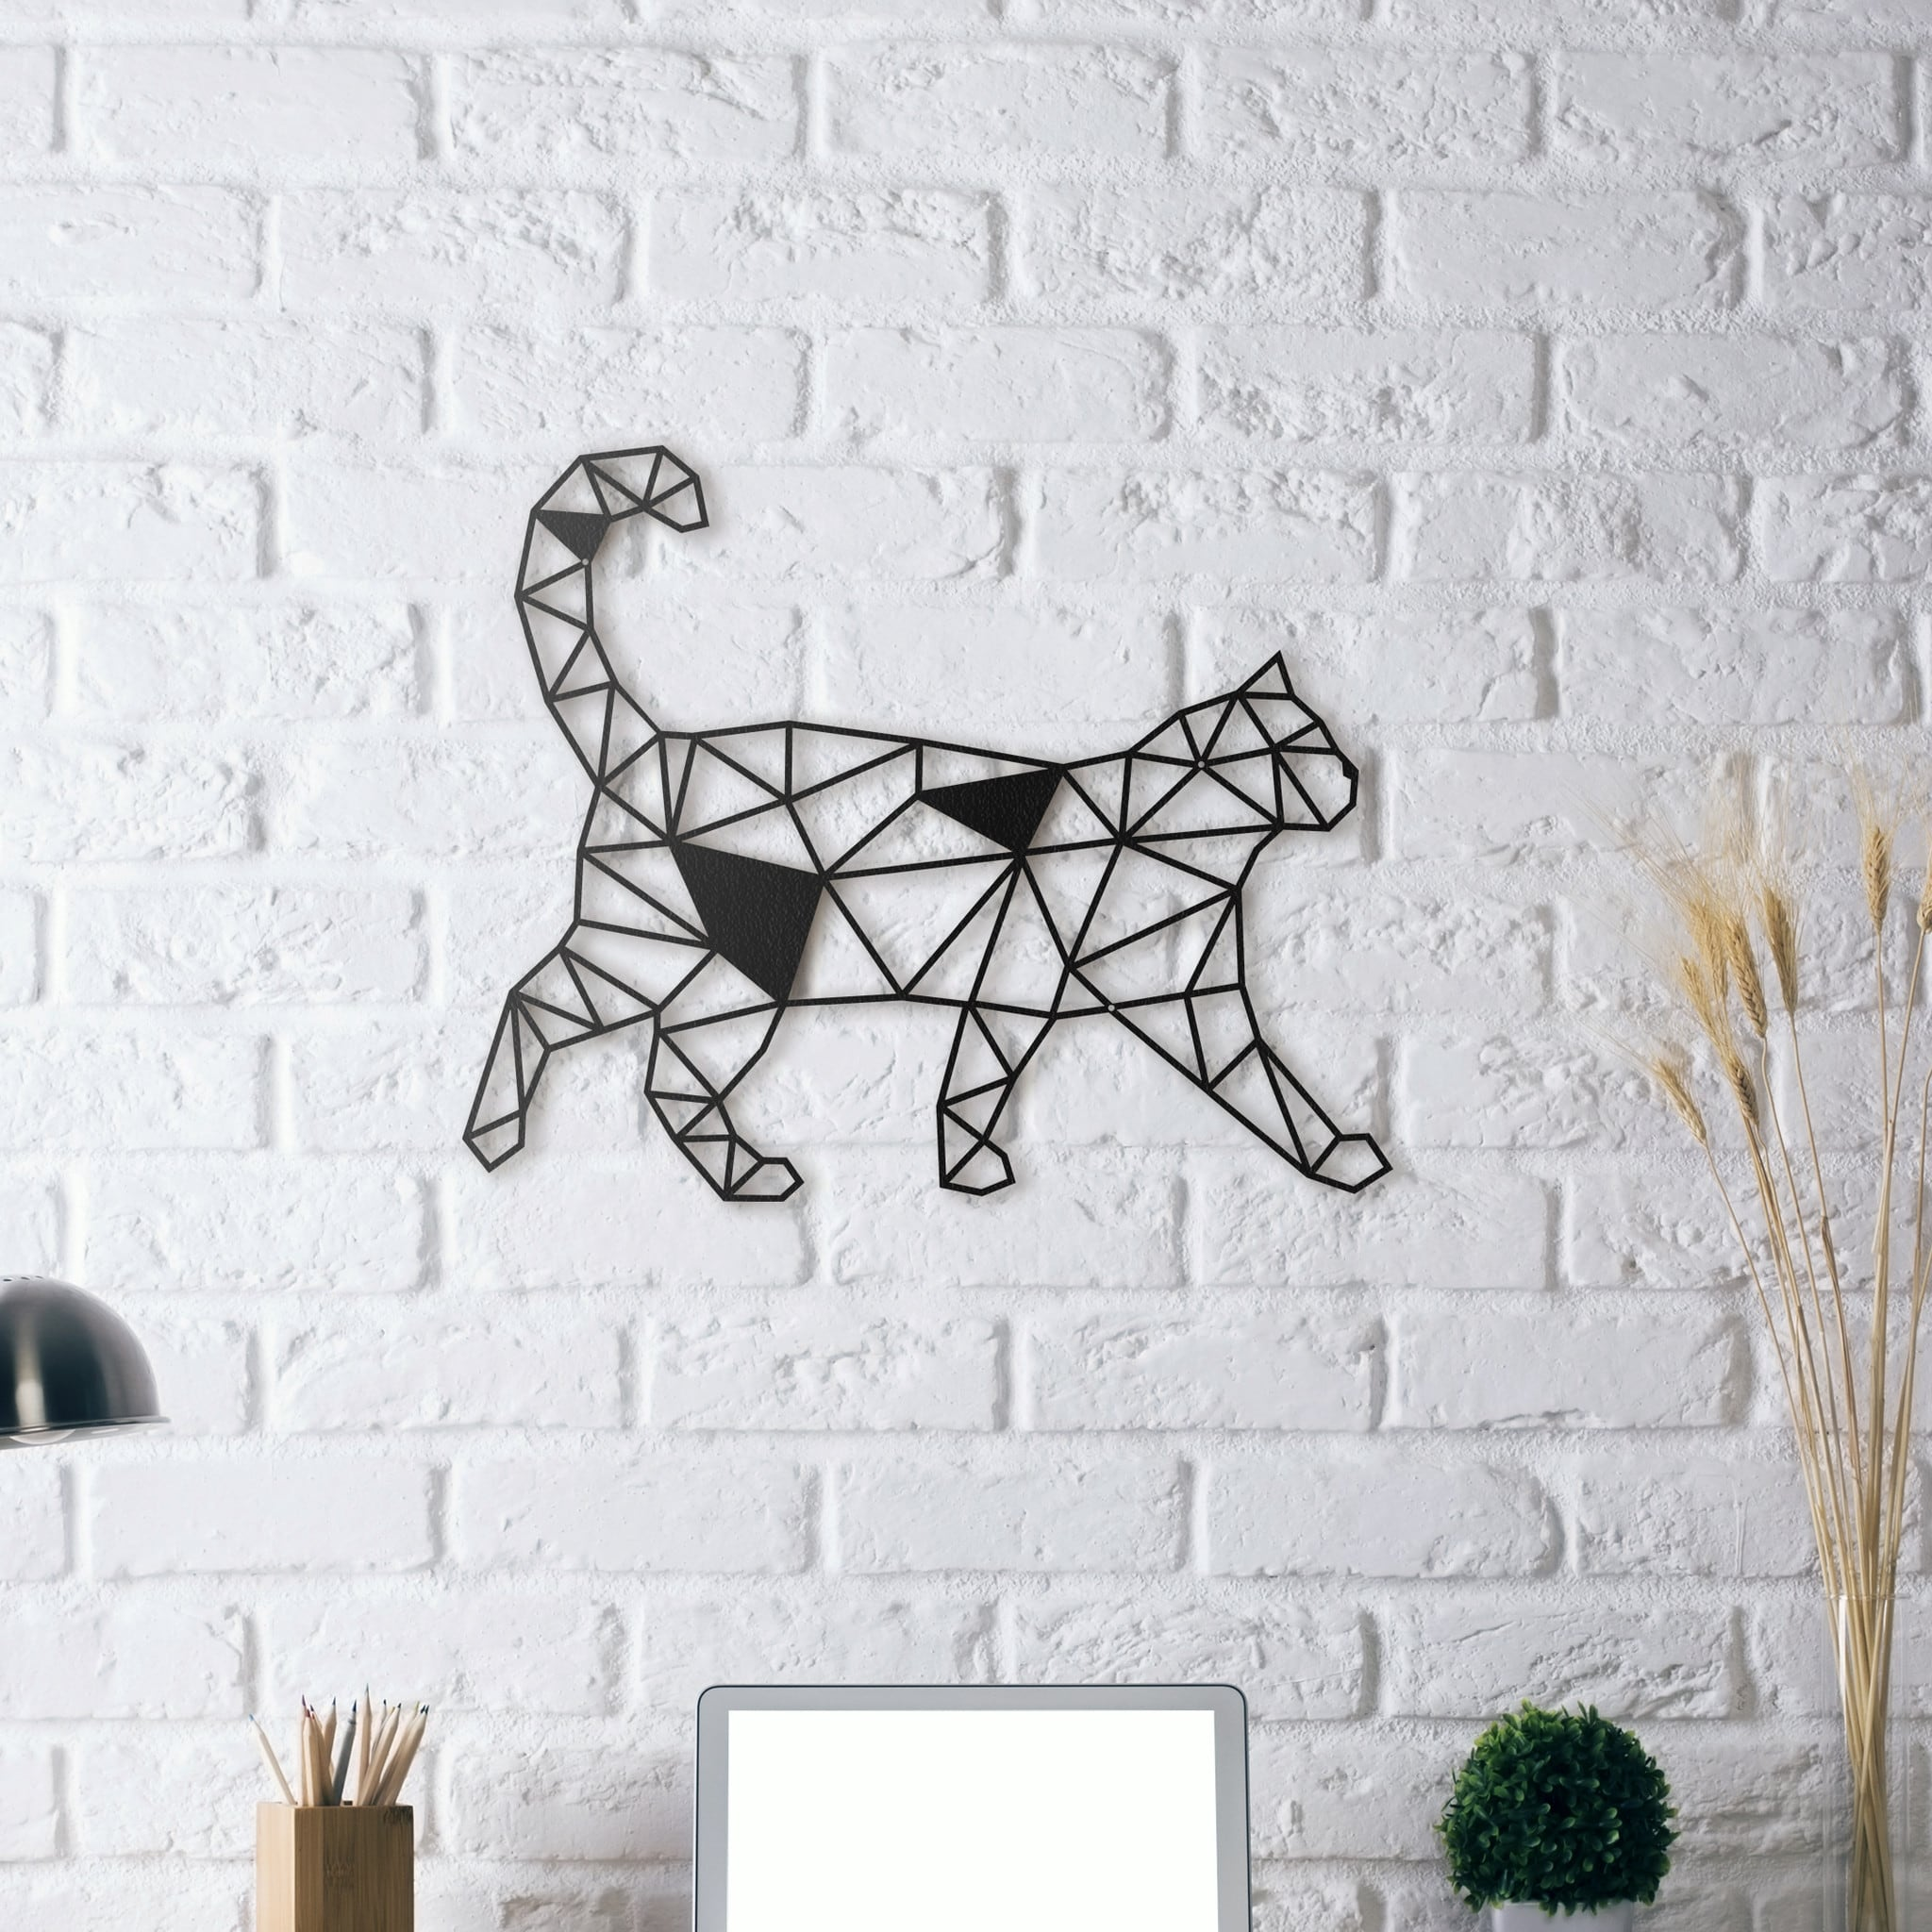 Design wall decoration cat artwall and co for Decoration murale acier